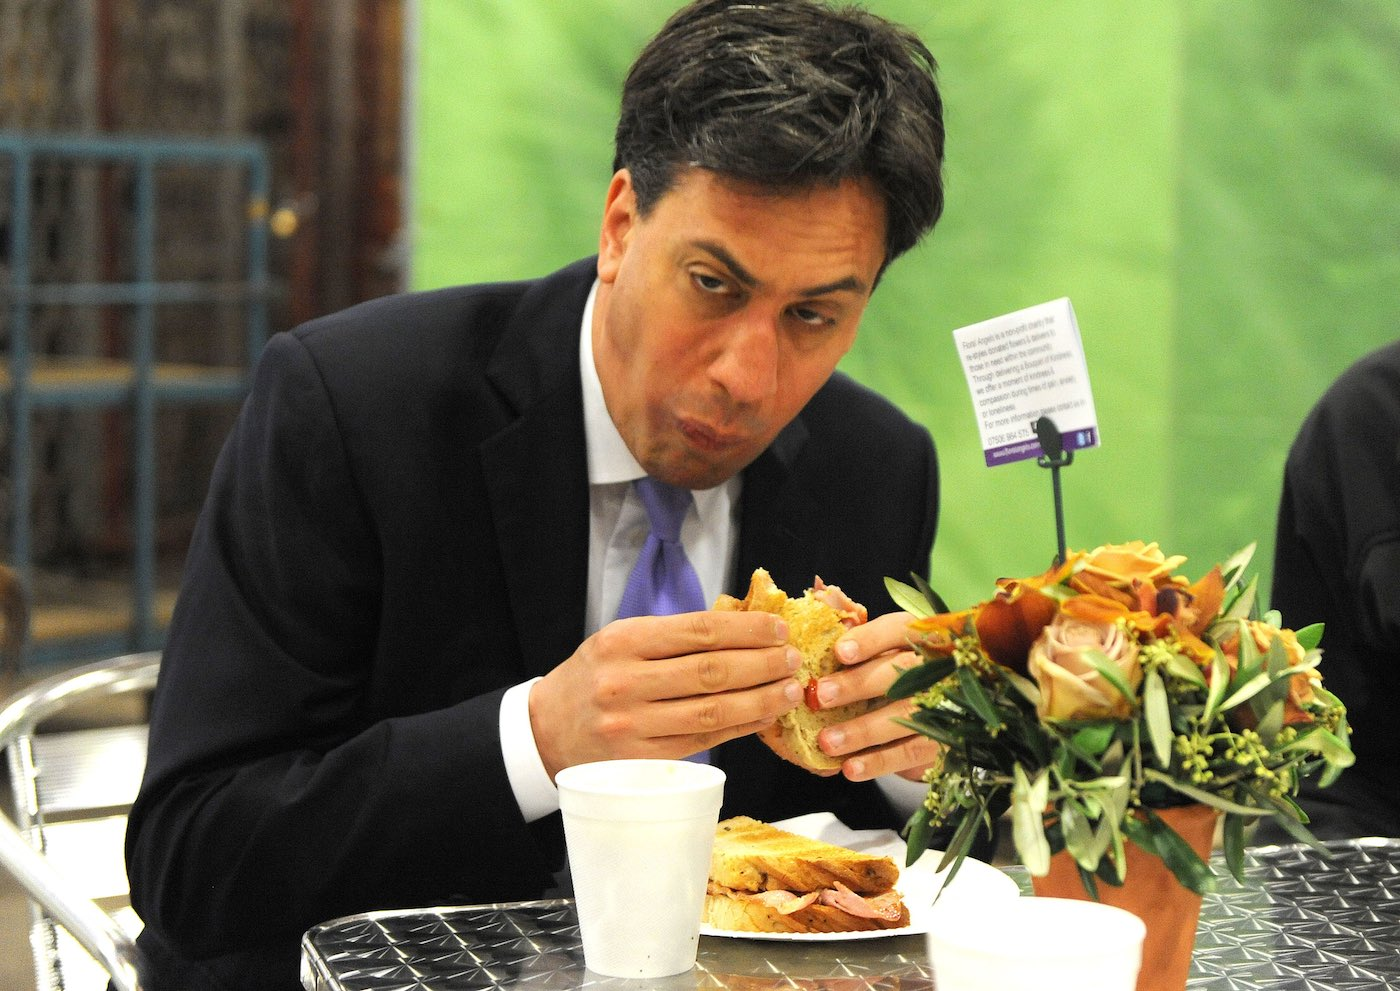 The problem for Labour isn't the fact Ed Miliband can't eat a bacon sandwich, it's that it came to define everything about Ed in 30 seconds|Photo: Eyevine/Redux